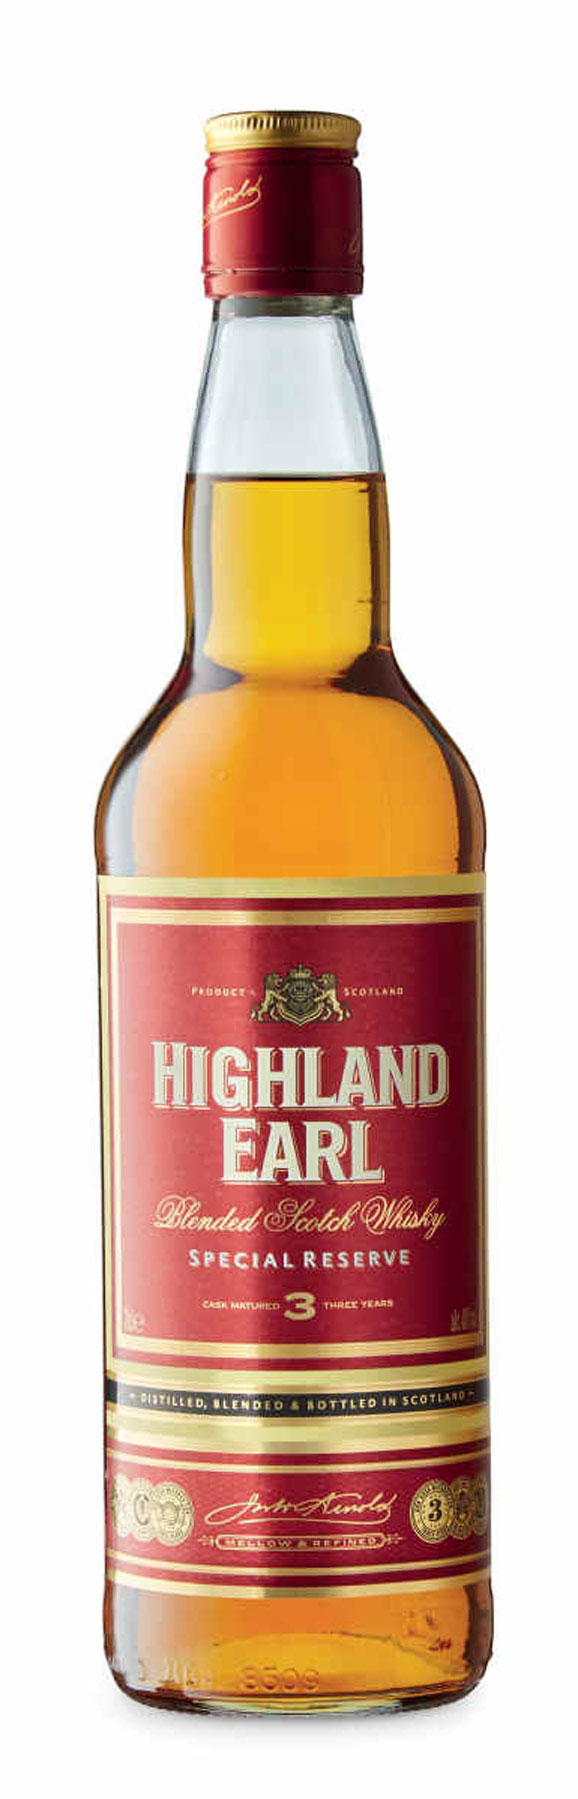 Highland Earl Whisky from ALDI